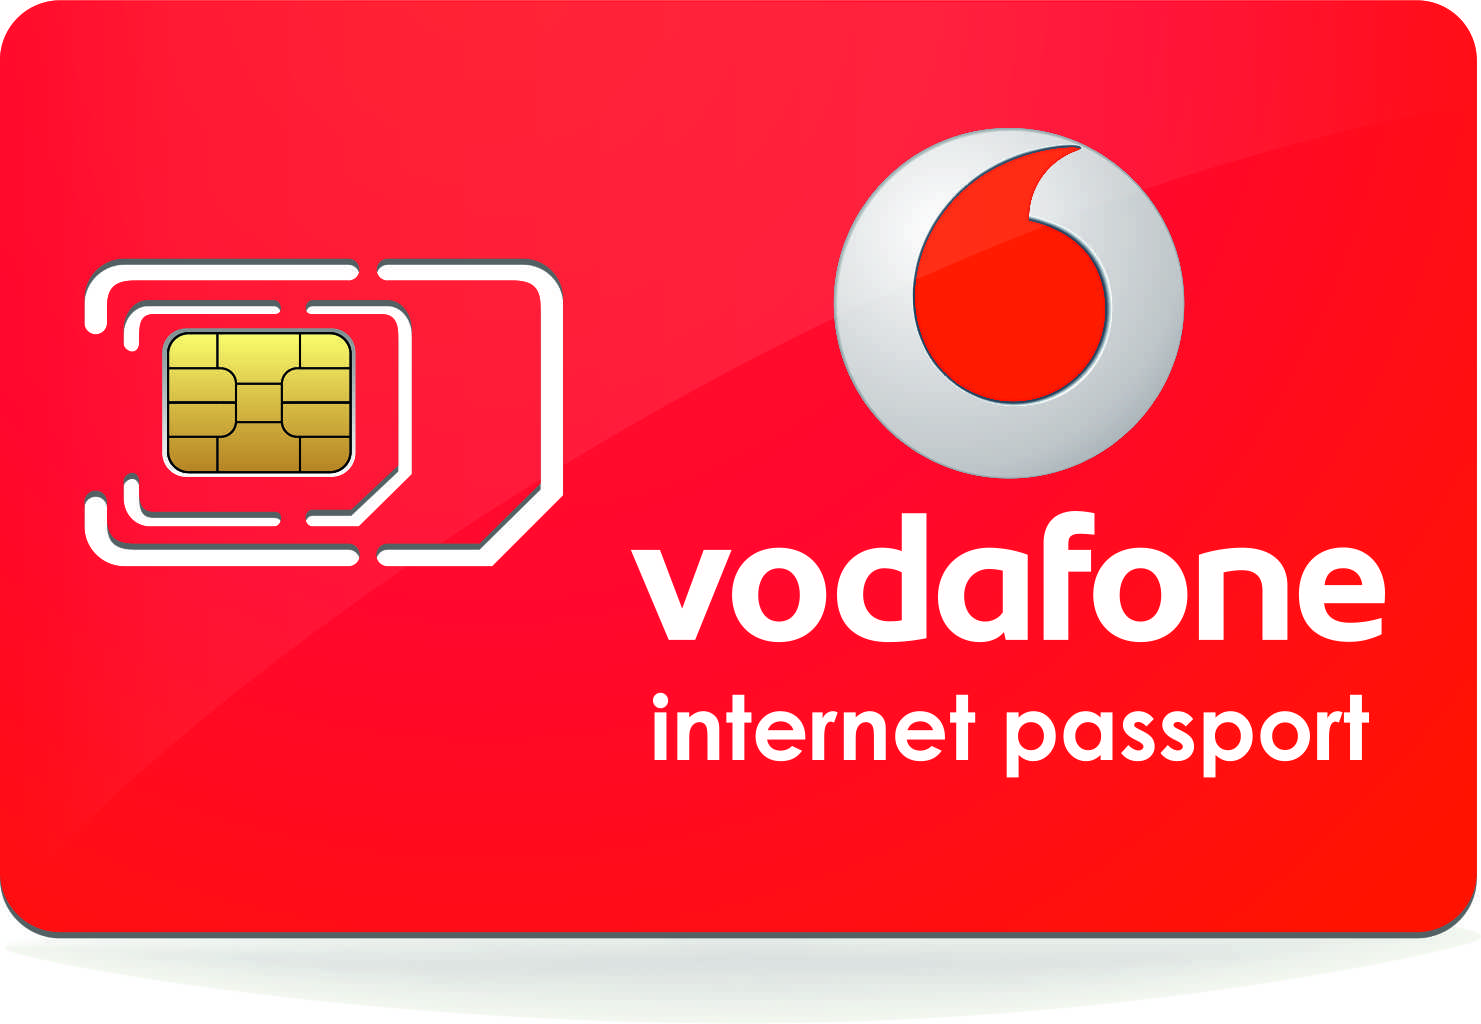 vodafone internet passport